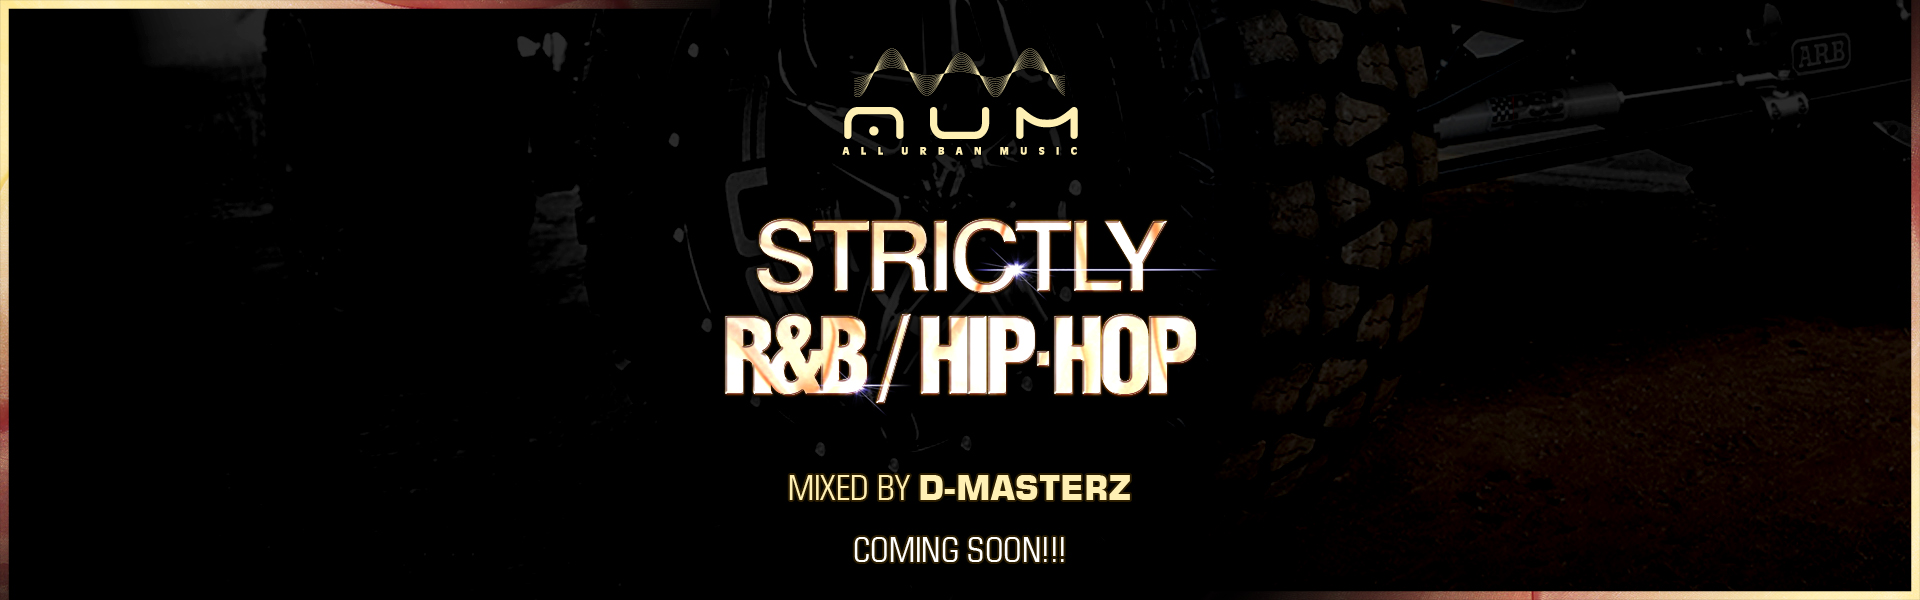 http://www.allurbanmusic.com/wp-content/uploads/2017/07/banner_all_urban_music_strictly_coming_soon.jpg